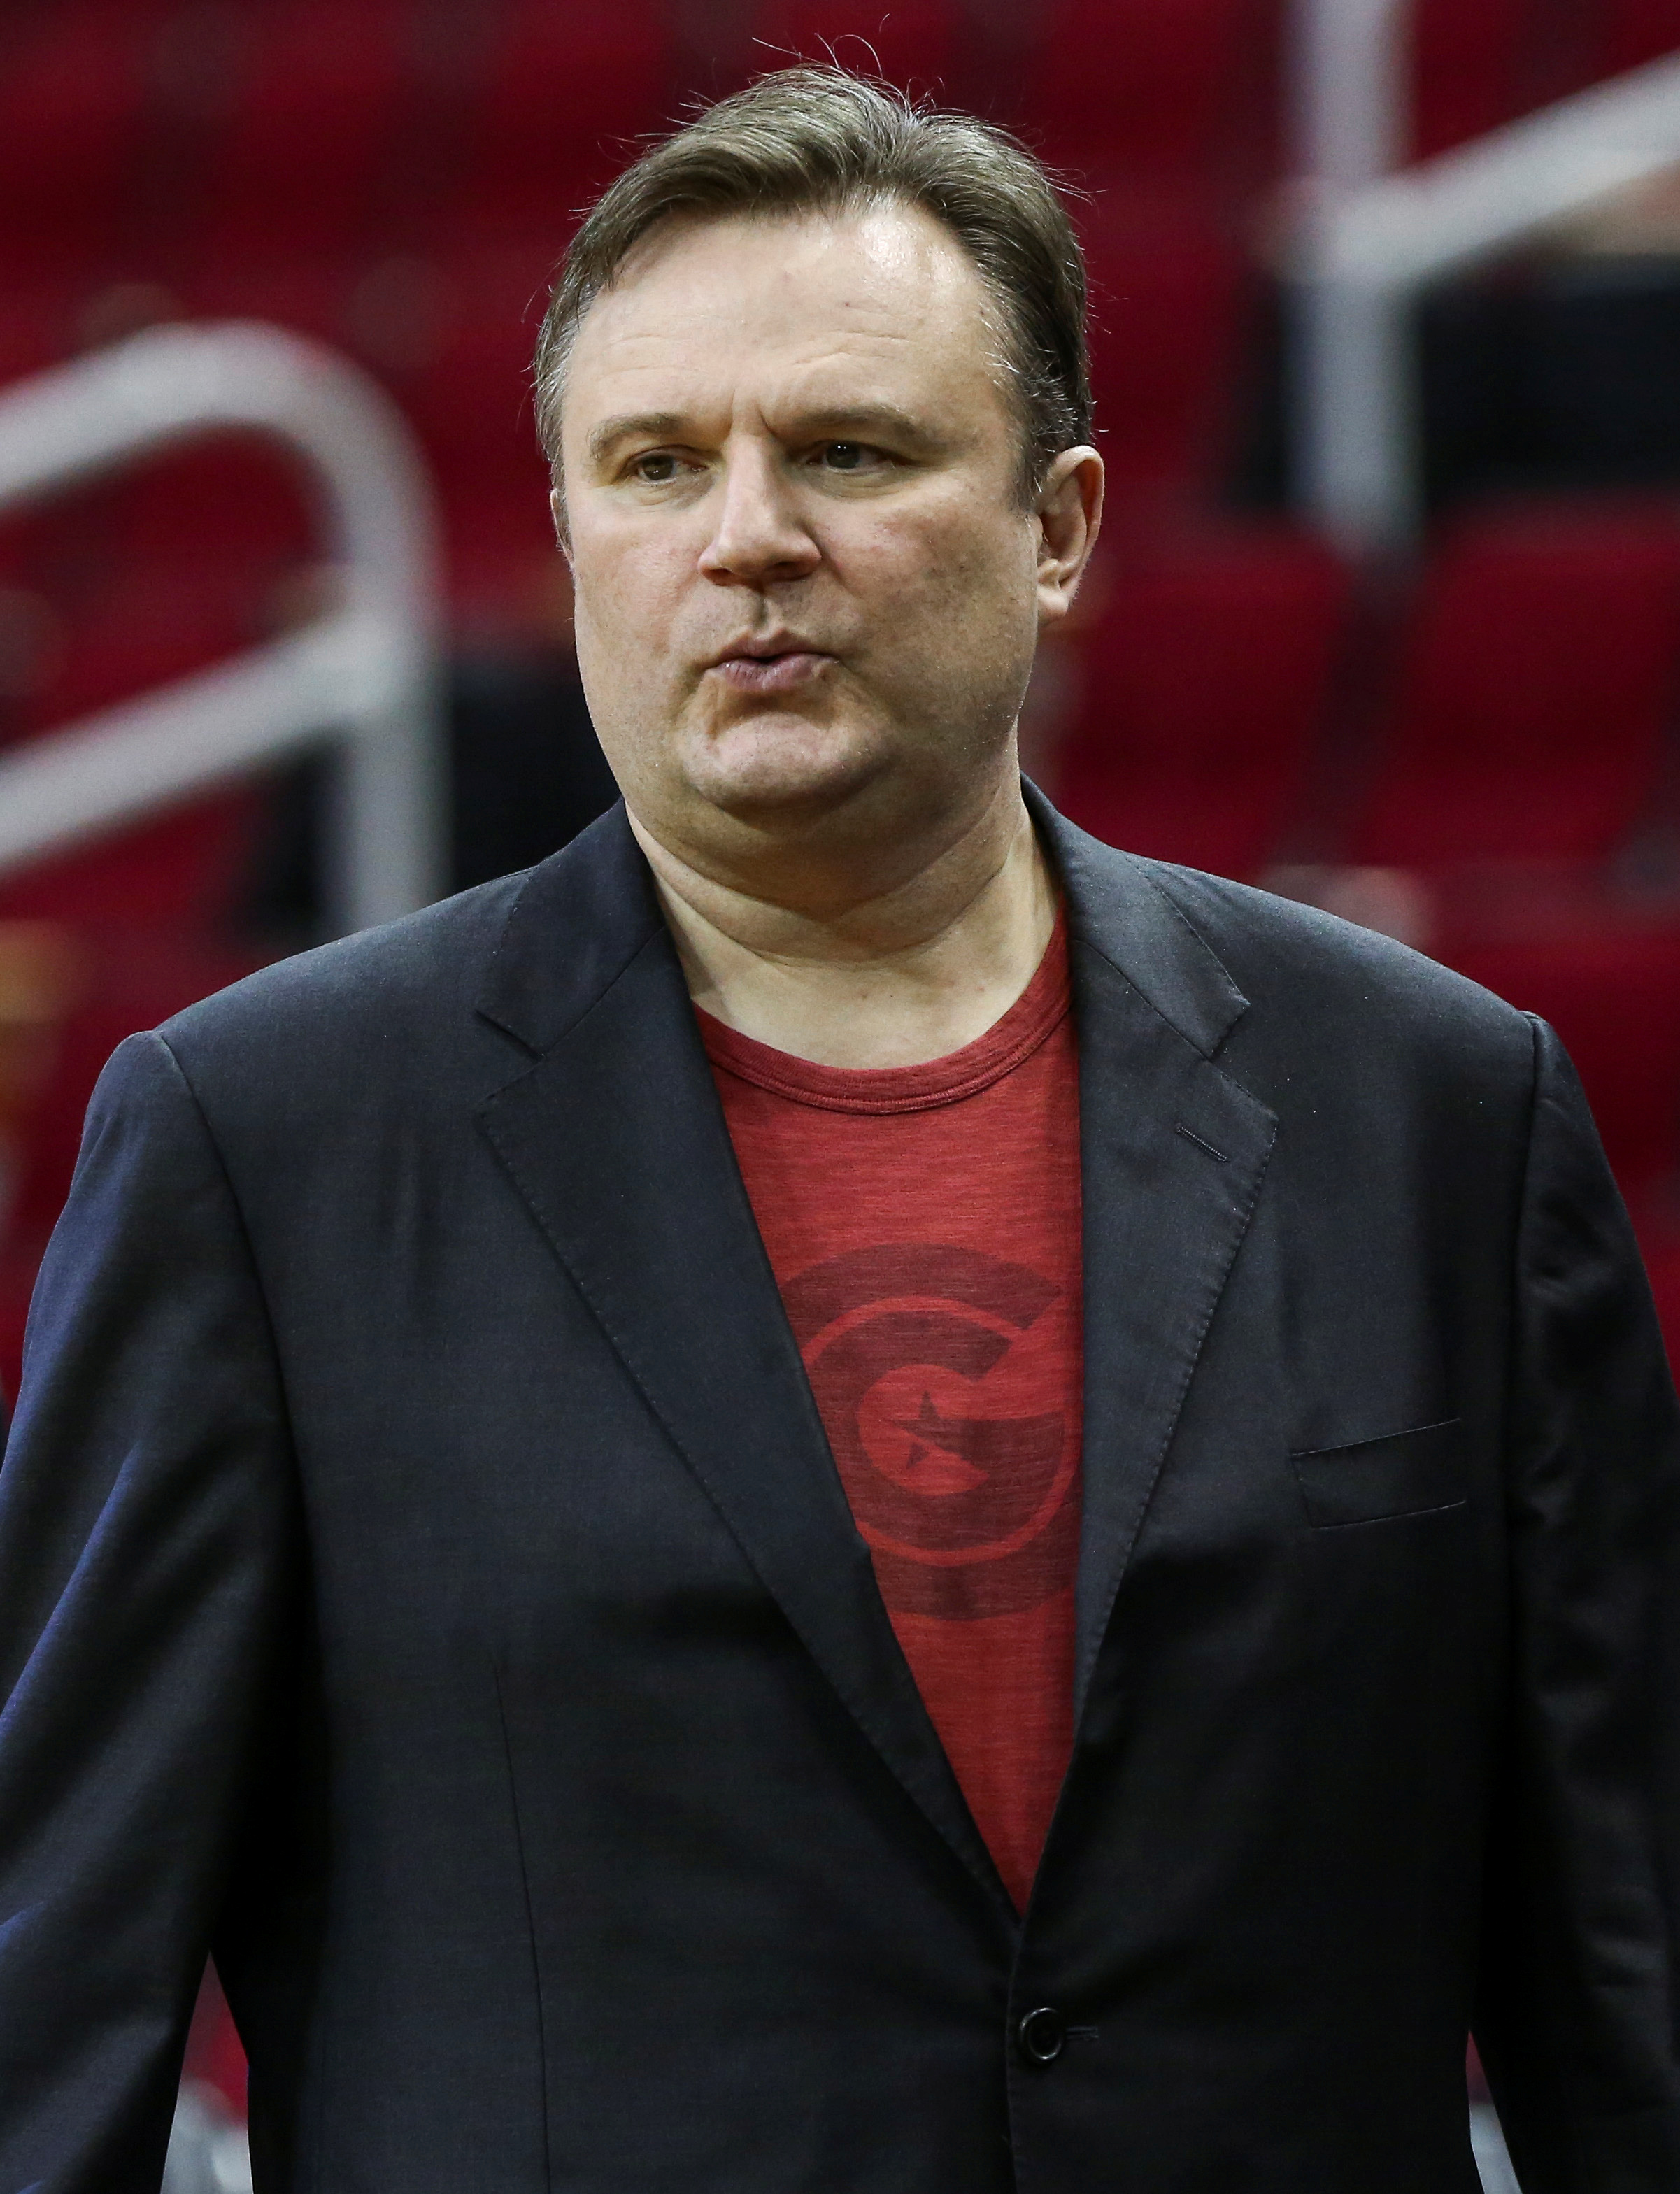 Manažer týmu Houston Rockets.  (Troy Taormina-USA TODAY Sports)